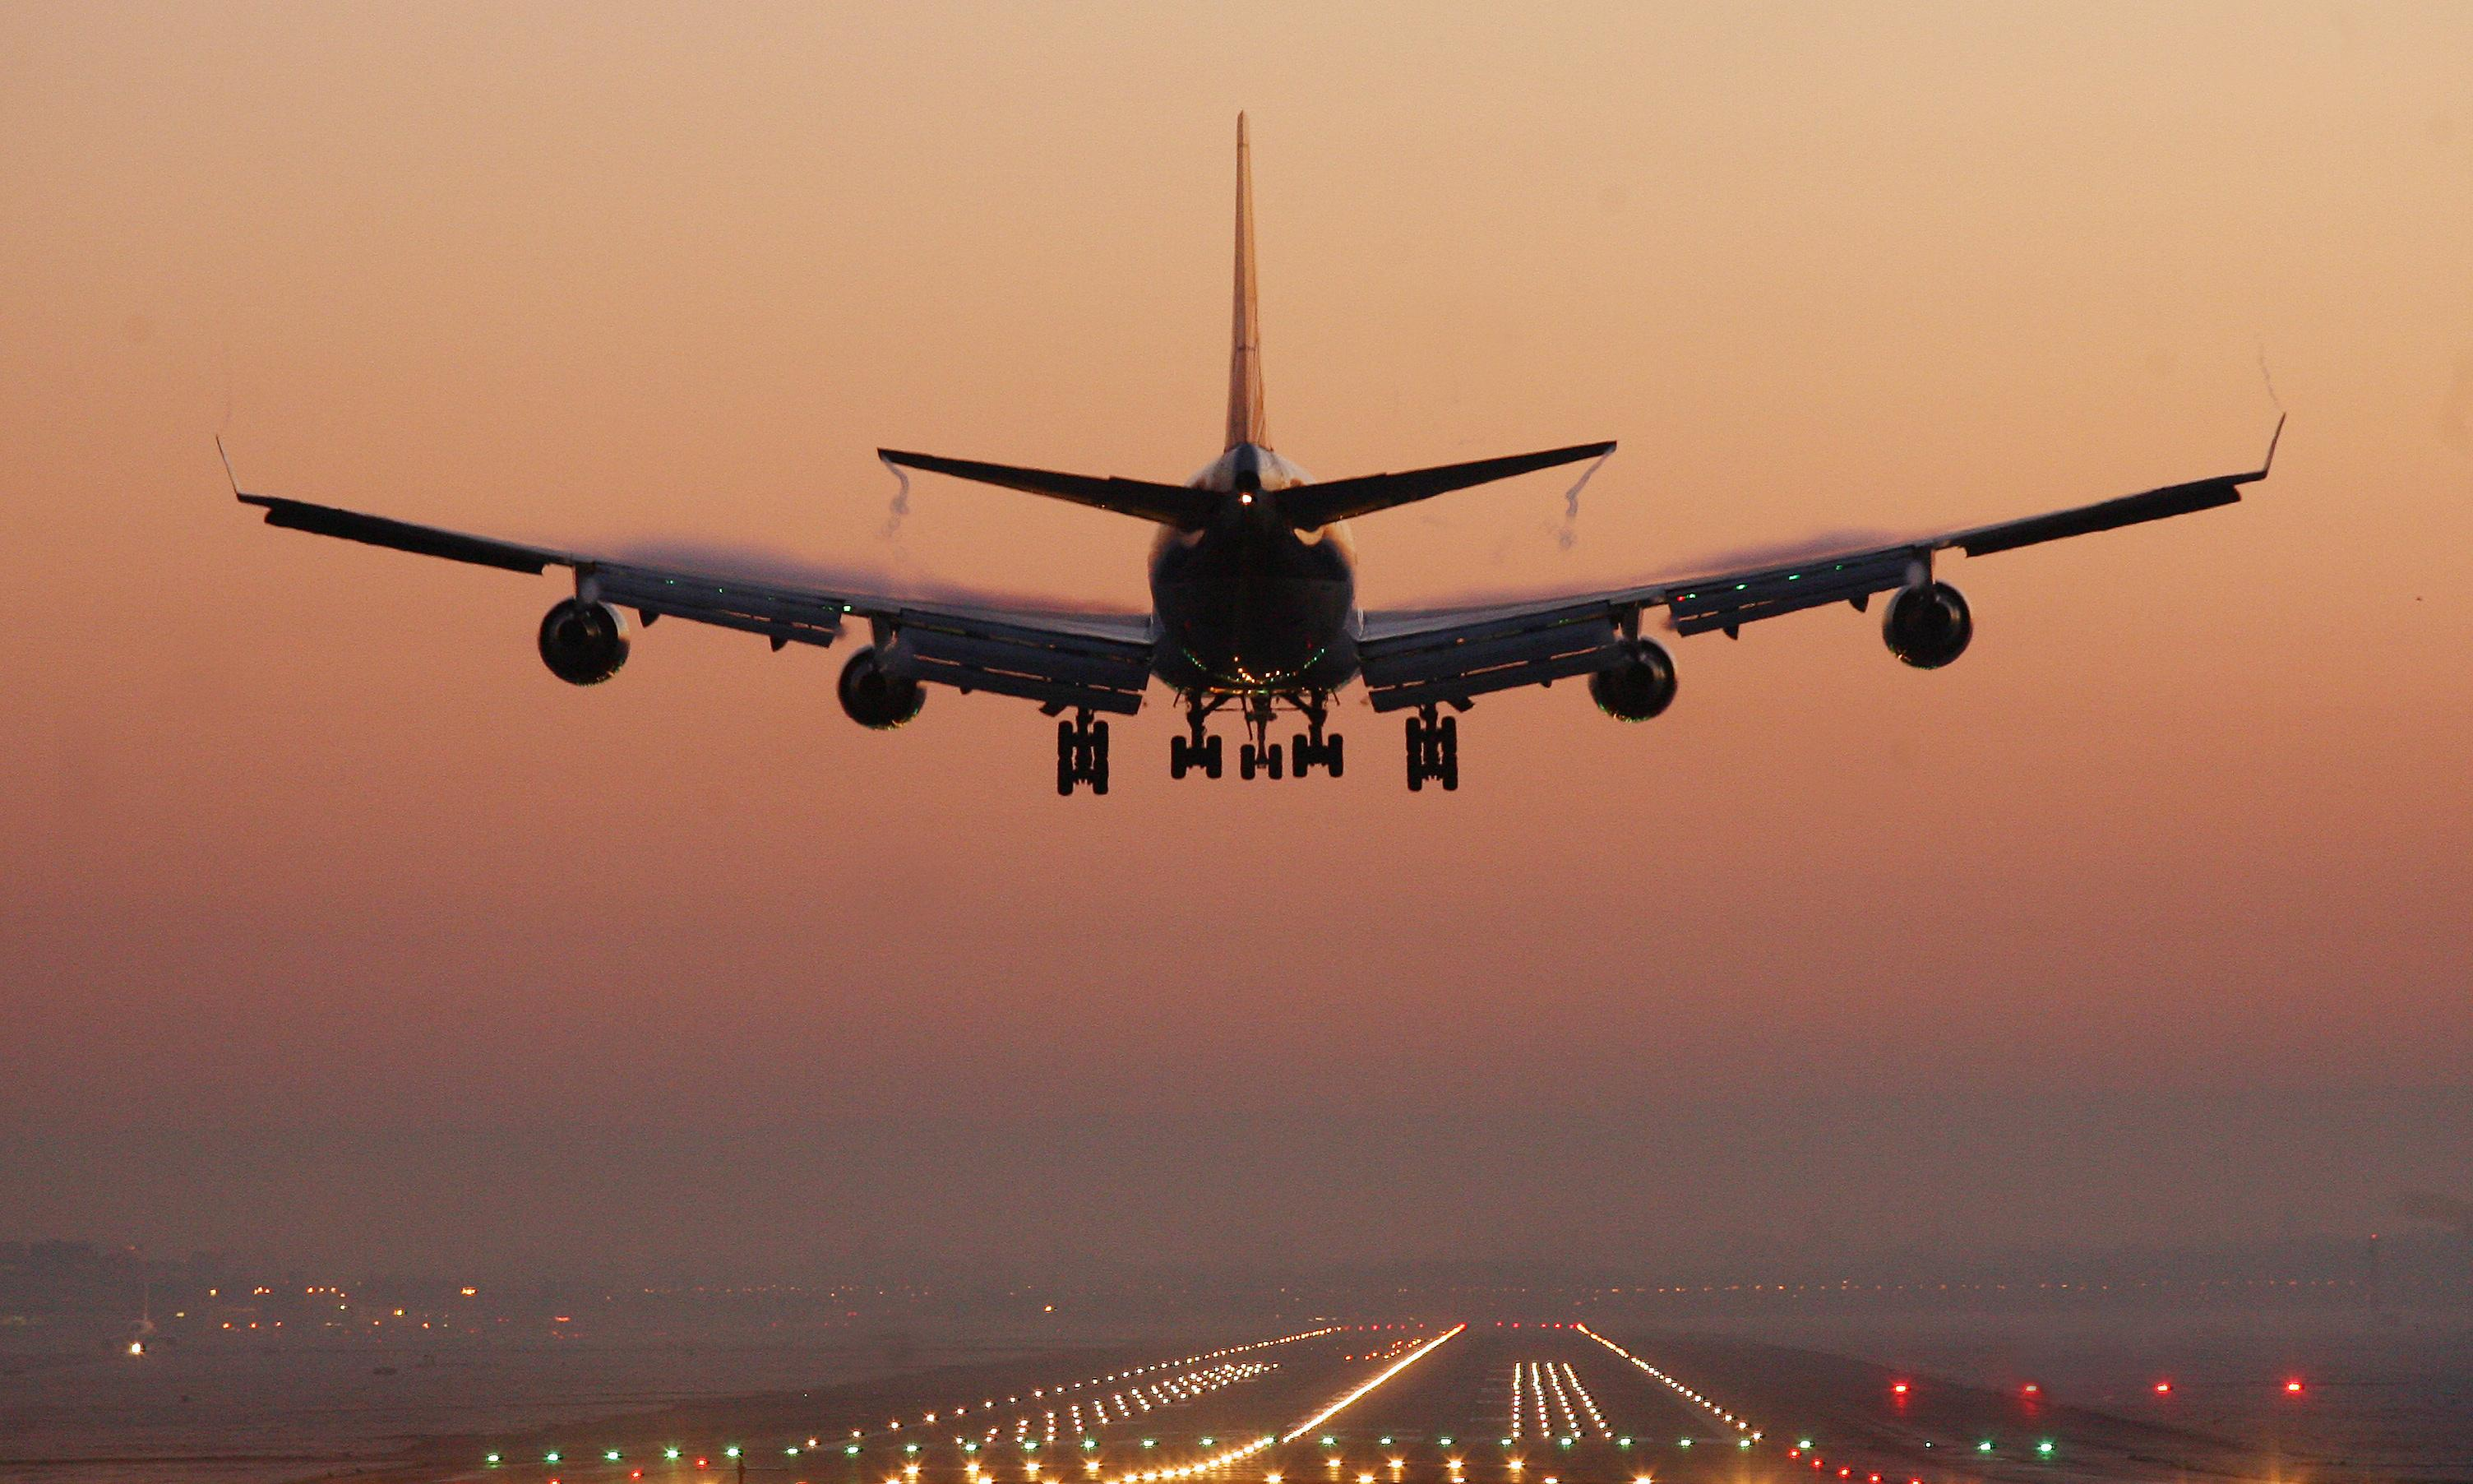 Why do aviation addicts fly in the face of reason?